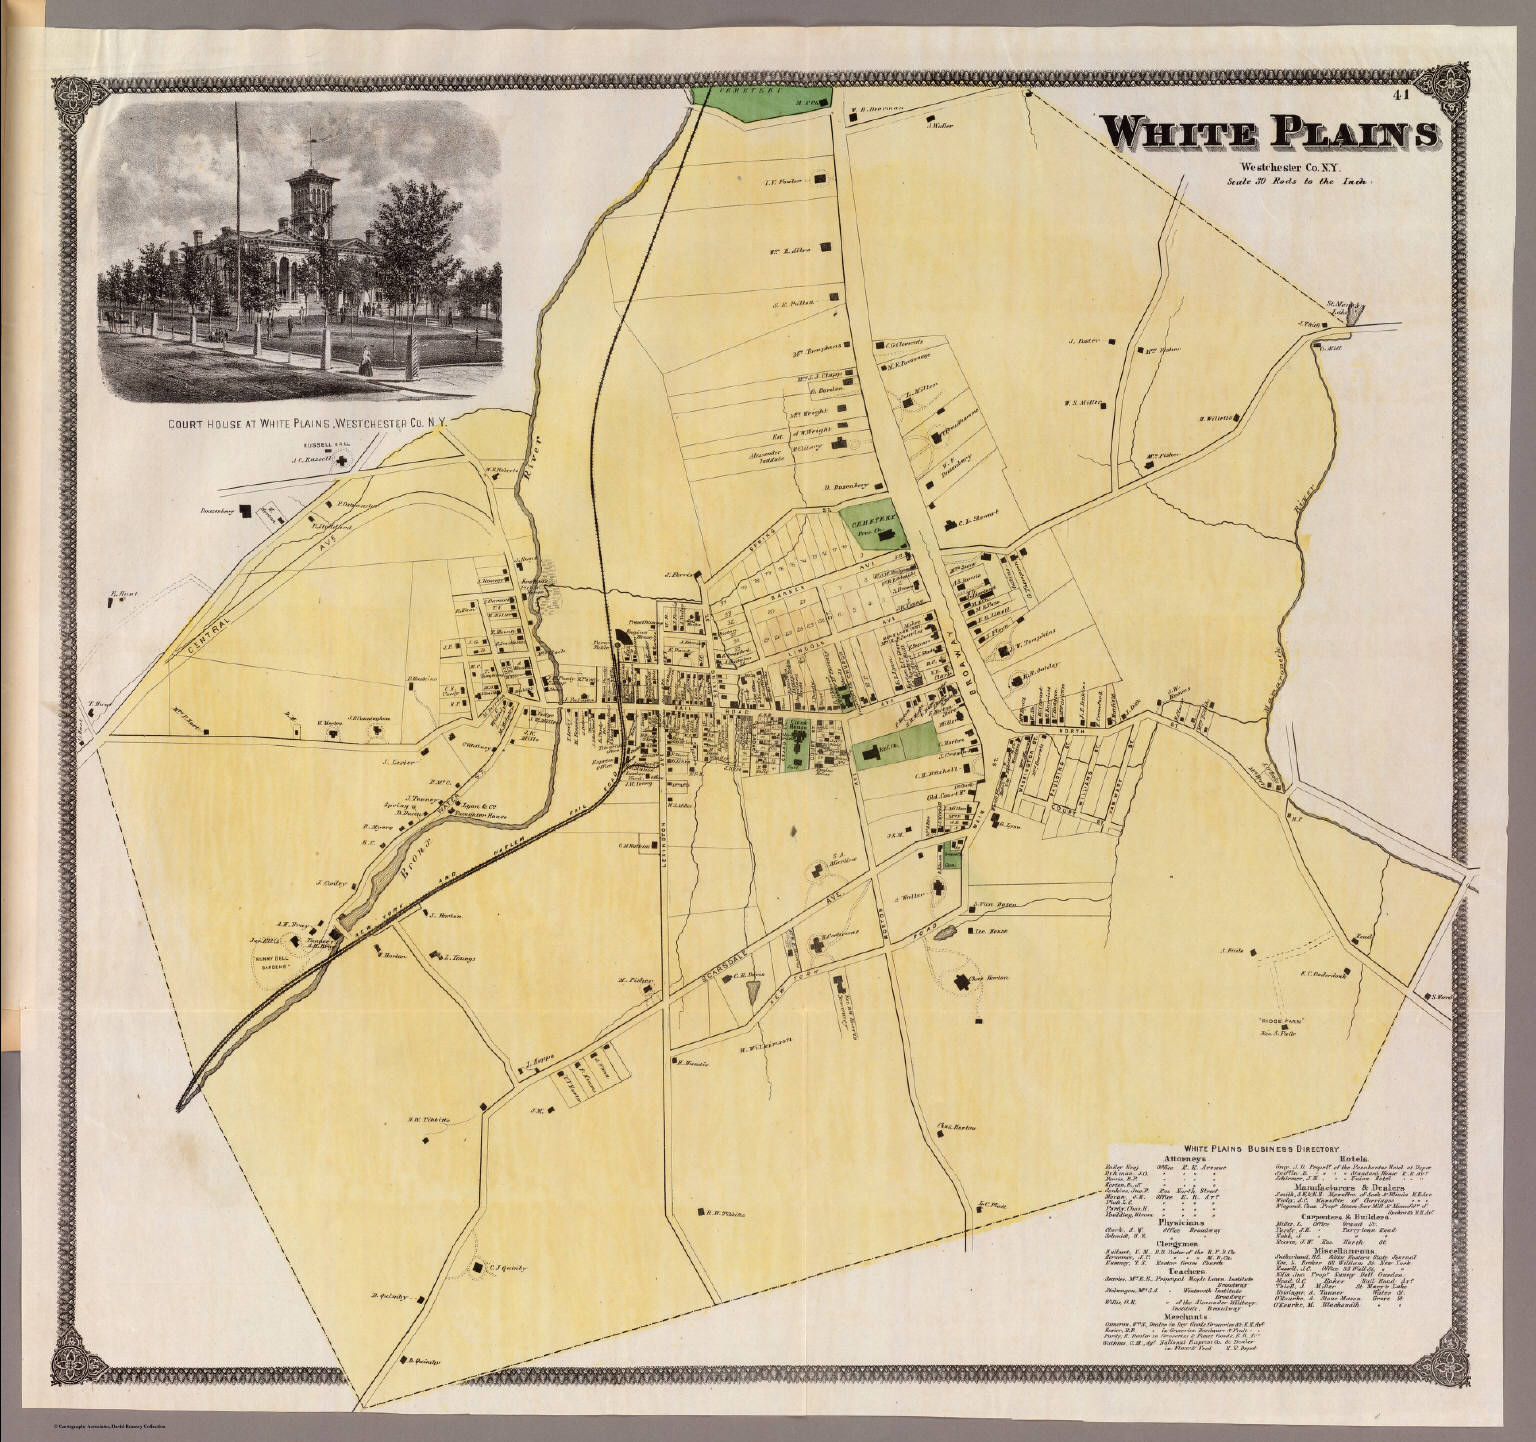 White Plains NY David Rumsey Historical Map Collection